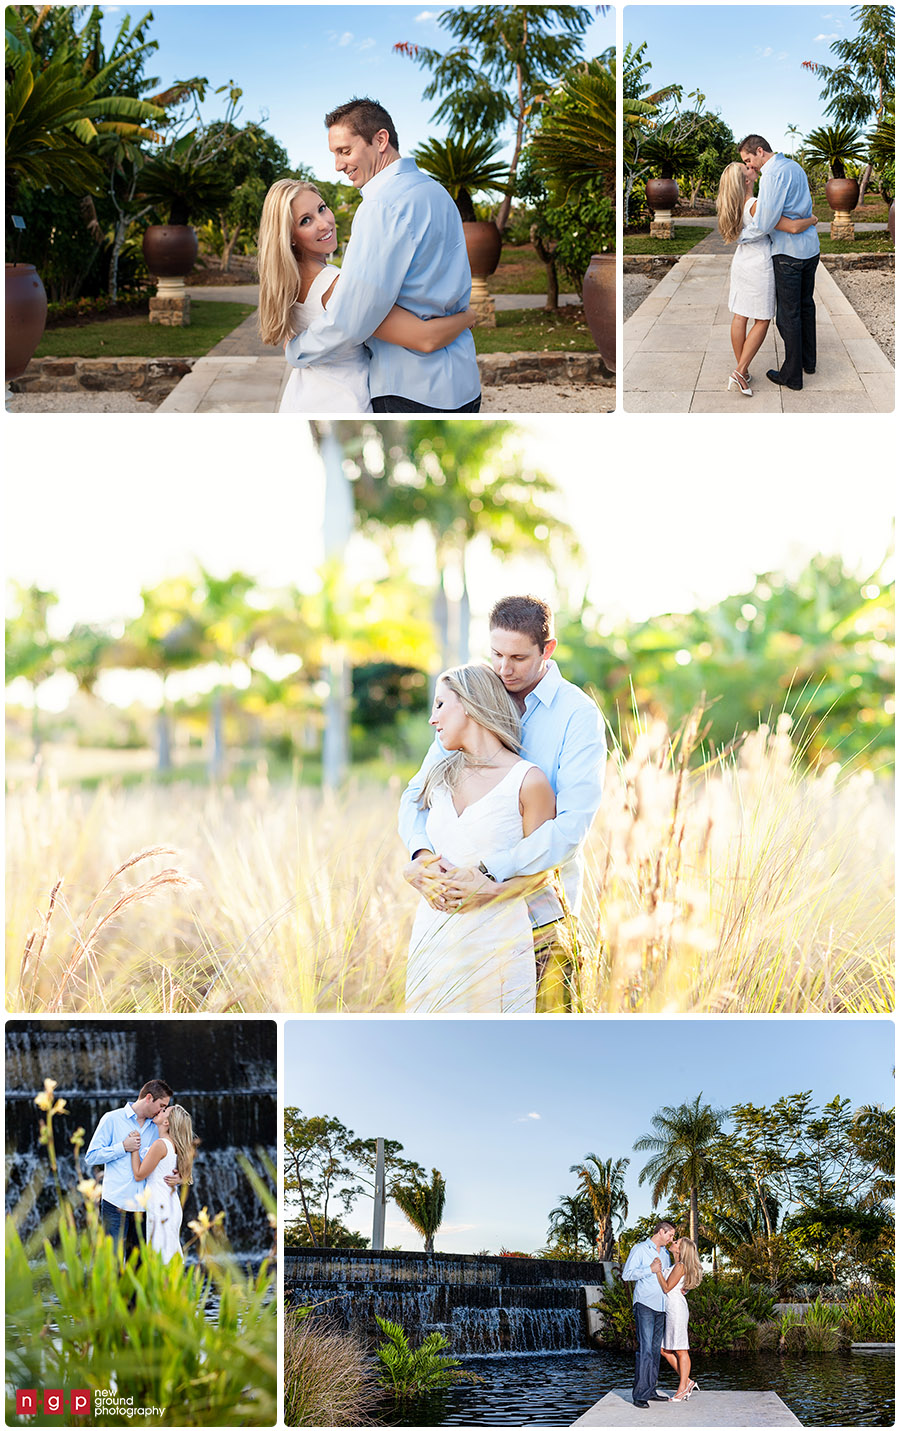 Naples Botanical Garden Engagement Session · Naples Engagement Photography